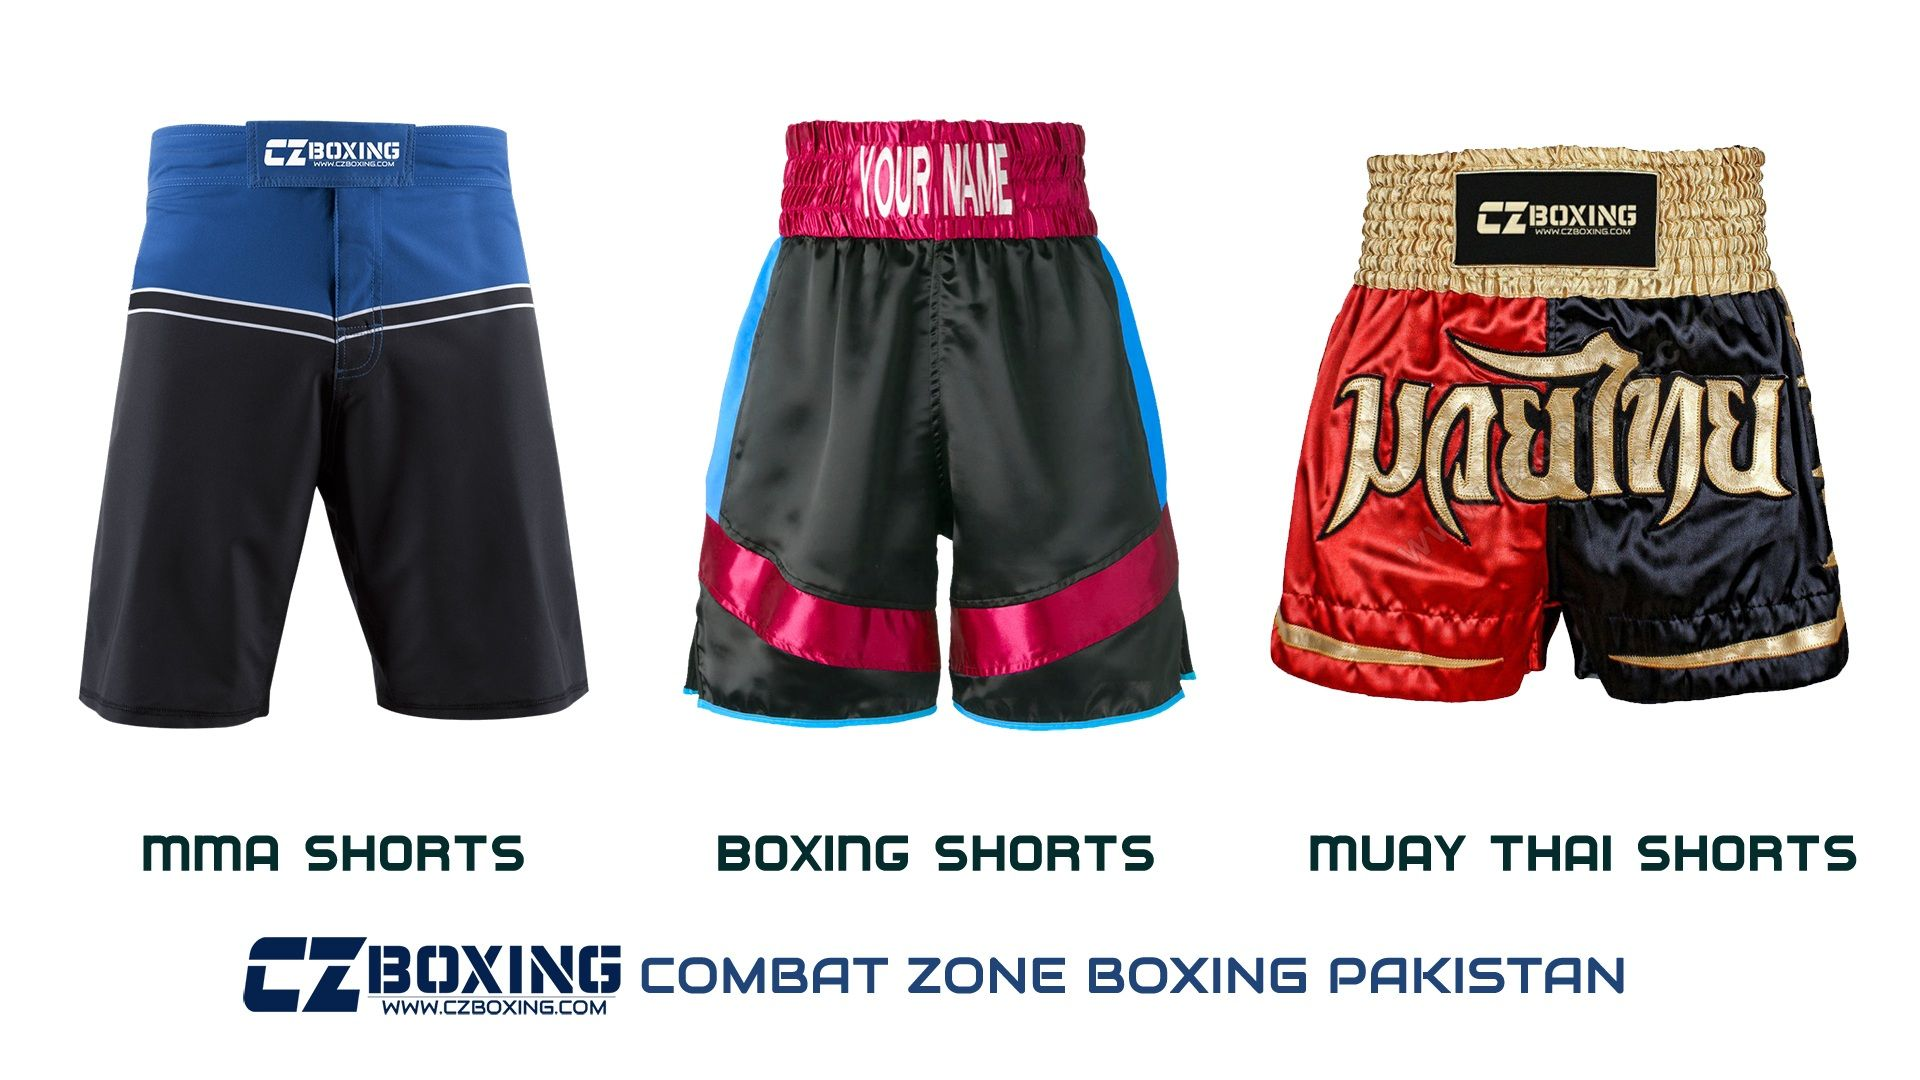 We Are Manufacturers Exporters And Suppliers Of Best Quality Custom Mma Shorts Personalized Boxing Shorts Muay Thai Shorts Our Products Can Be Customized